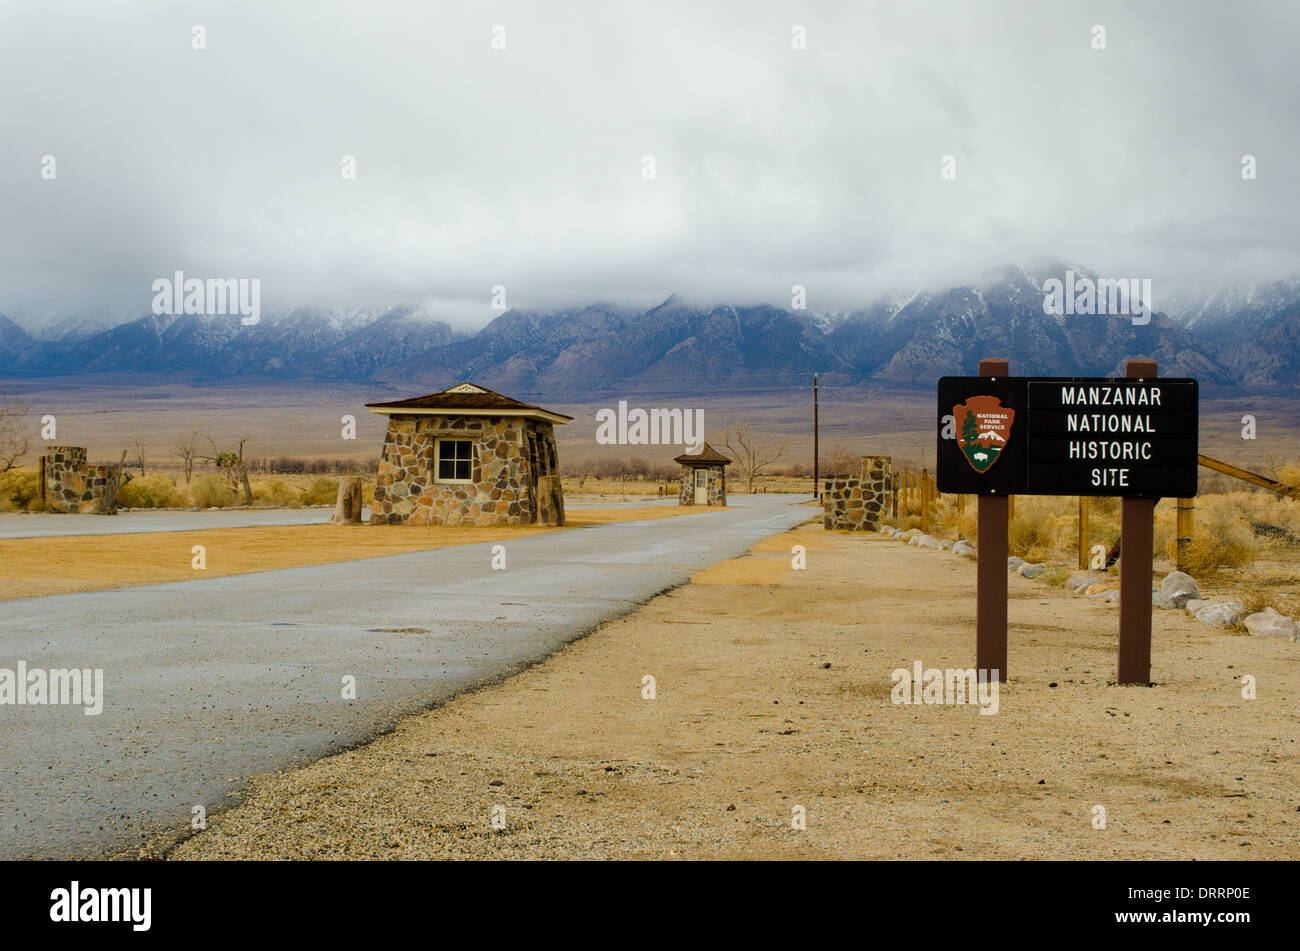 Entrance to Manzanar a WW2 era prison camp that held Japanese Americans located in a remote desert region in California - Stock Image